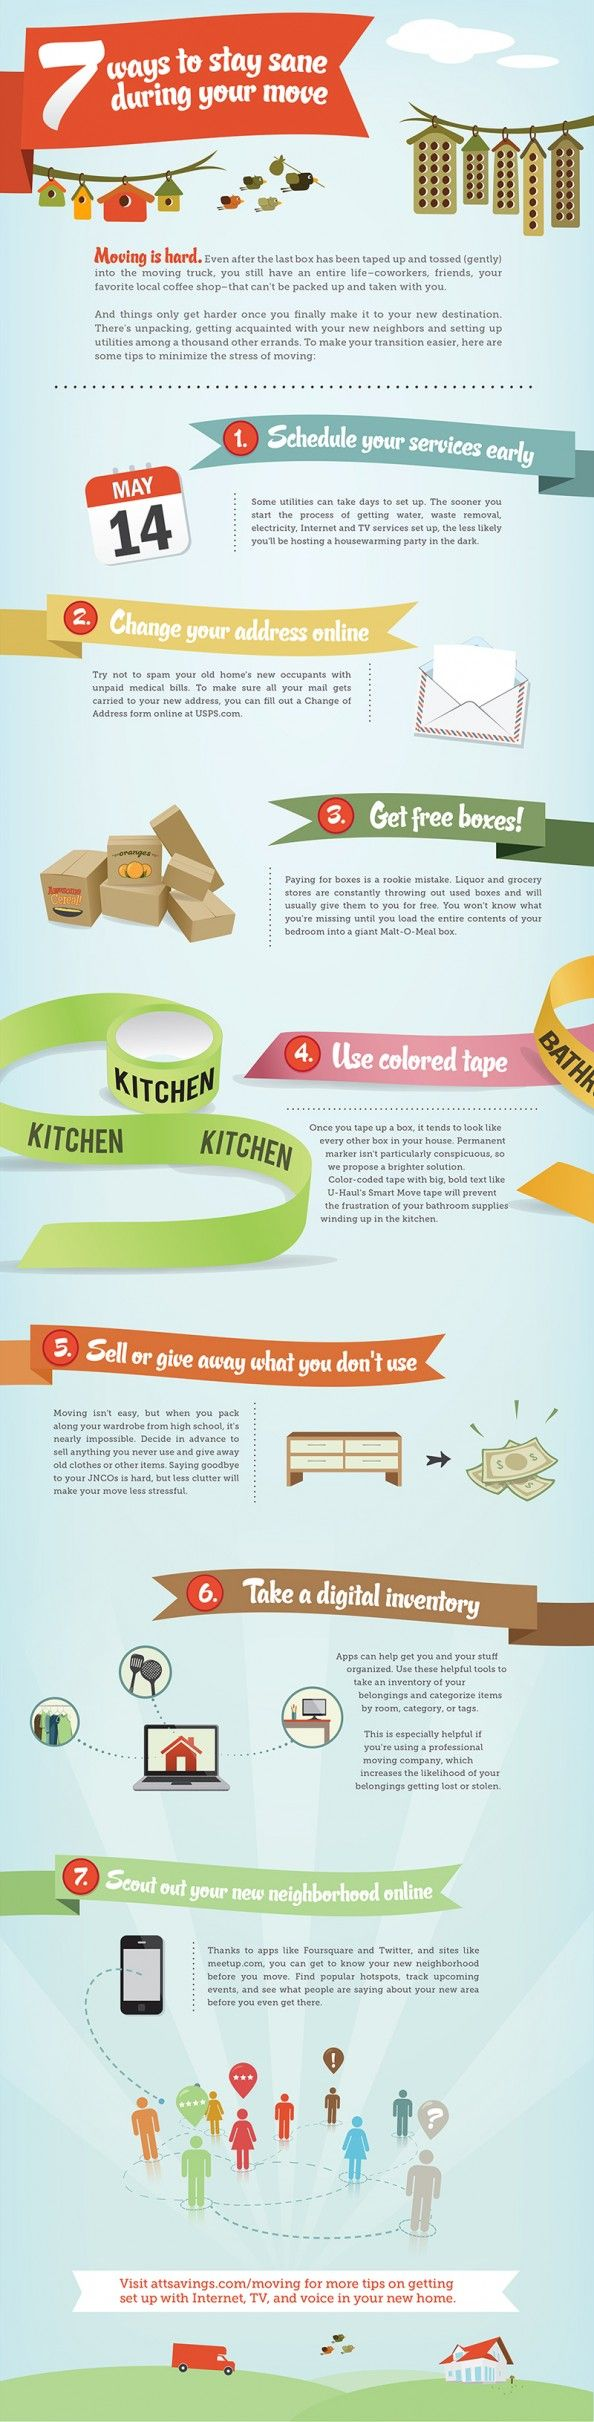 7 Best Moving Tips Infographic. At Grayhawk Homes, we will be there for you even after you purchase one of our ENERGY STAR certified homes. Visit us at http://www.grayhawkhomesinc.com/index.html for more ways we can help you.